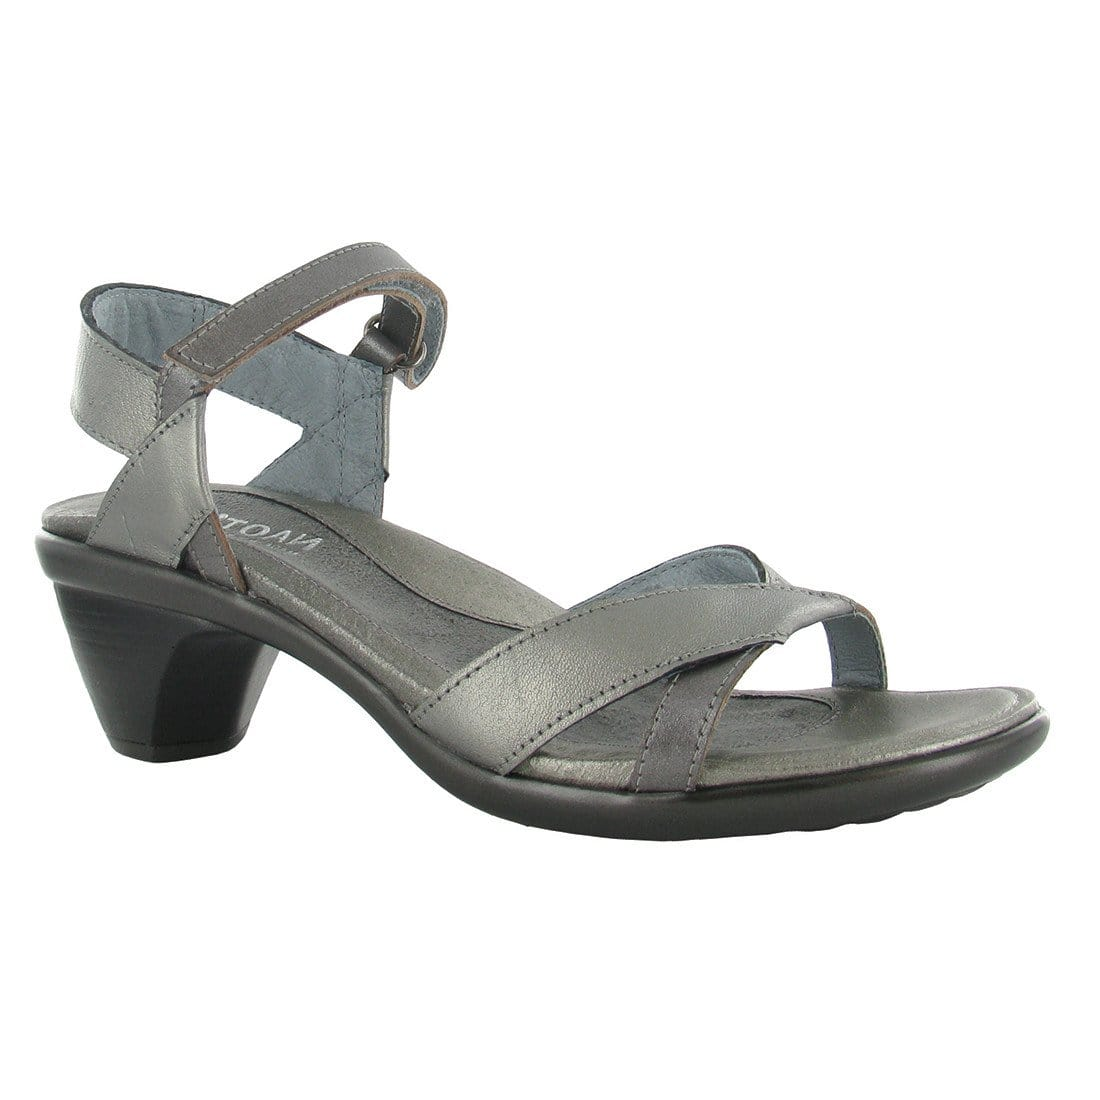 Naot Cheer Women's Contrast Leather Crisscross Ankle Strap Sandal Shoe